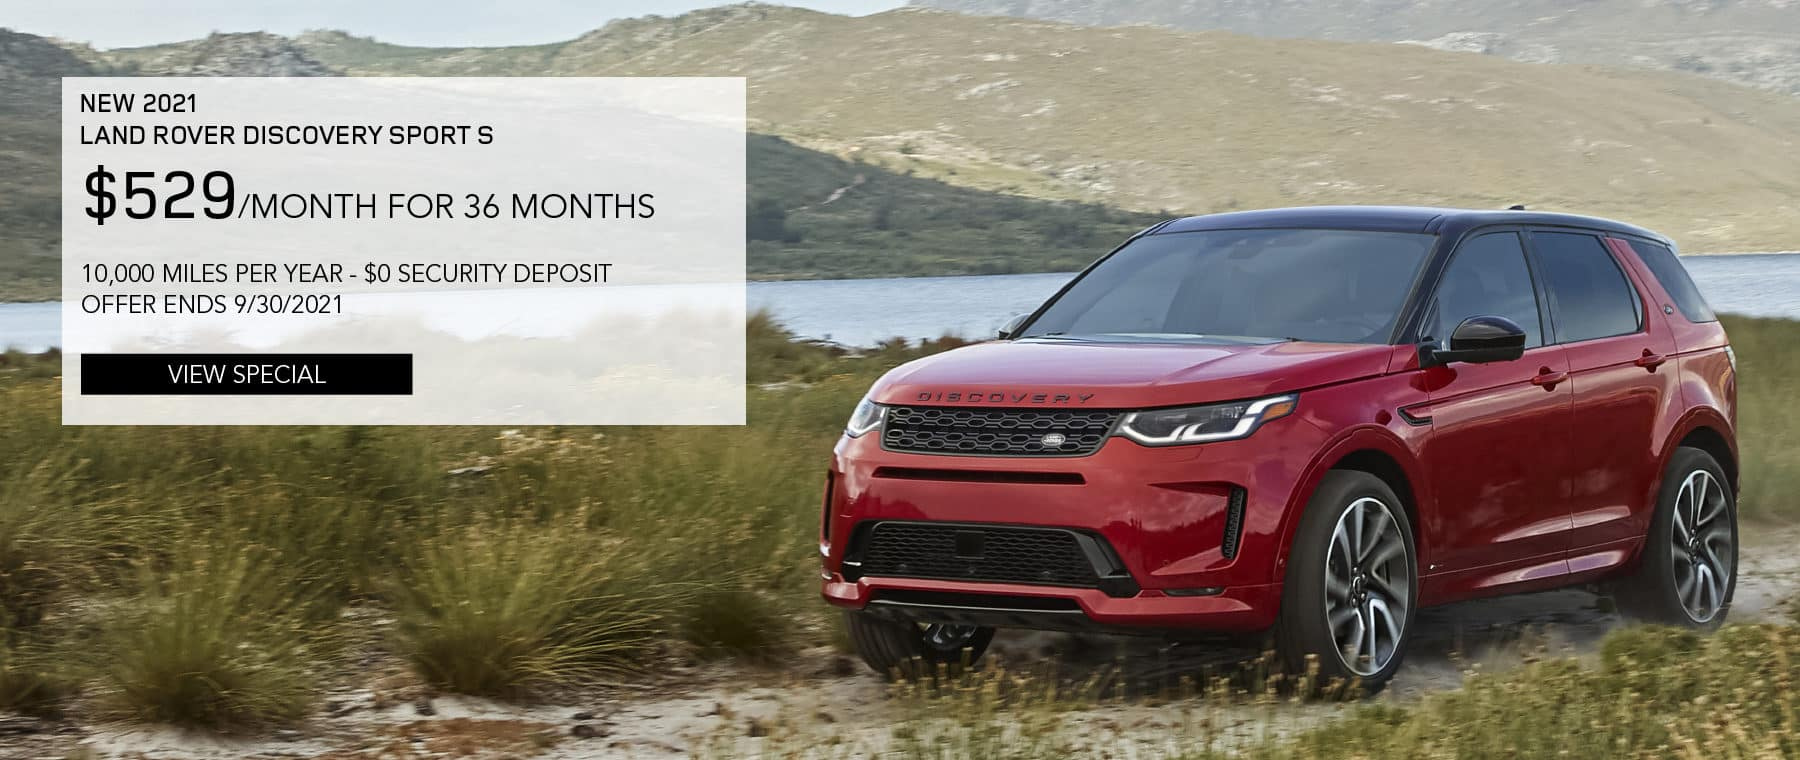 NEW 2021 LAND ROVER DISCOVERY SPORT S. $529 PER MONTH. 36 MONTH LEASE TERM. $3,995 CASH DUE AT SIGNING. $0 SECURITY DEPOSIT. 10,000 MILES PER YEAR. EXCLUDES RETAILER FEES, TAXES, TITLE AND REGISTRATION FEES, PROCESSING FEE AND ANY EMISSION TESTING CHARGE. OFFER ENDS 9/30/2021. VIEW SPECIAL. RED LAND ROVER DISCOVERY SPORT PARKED ON DIRT ROAD.